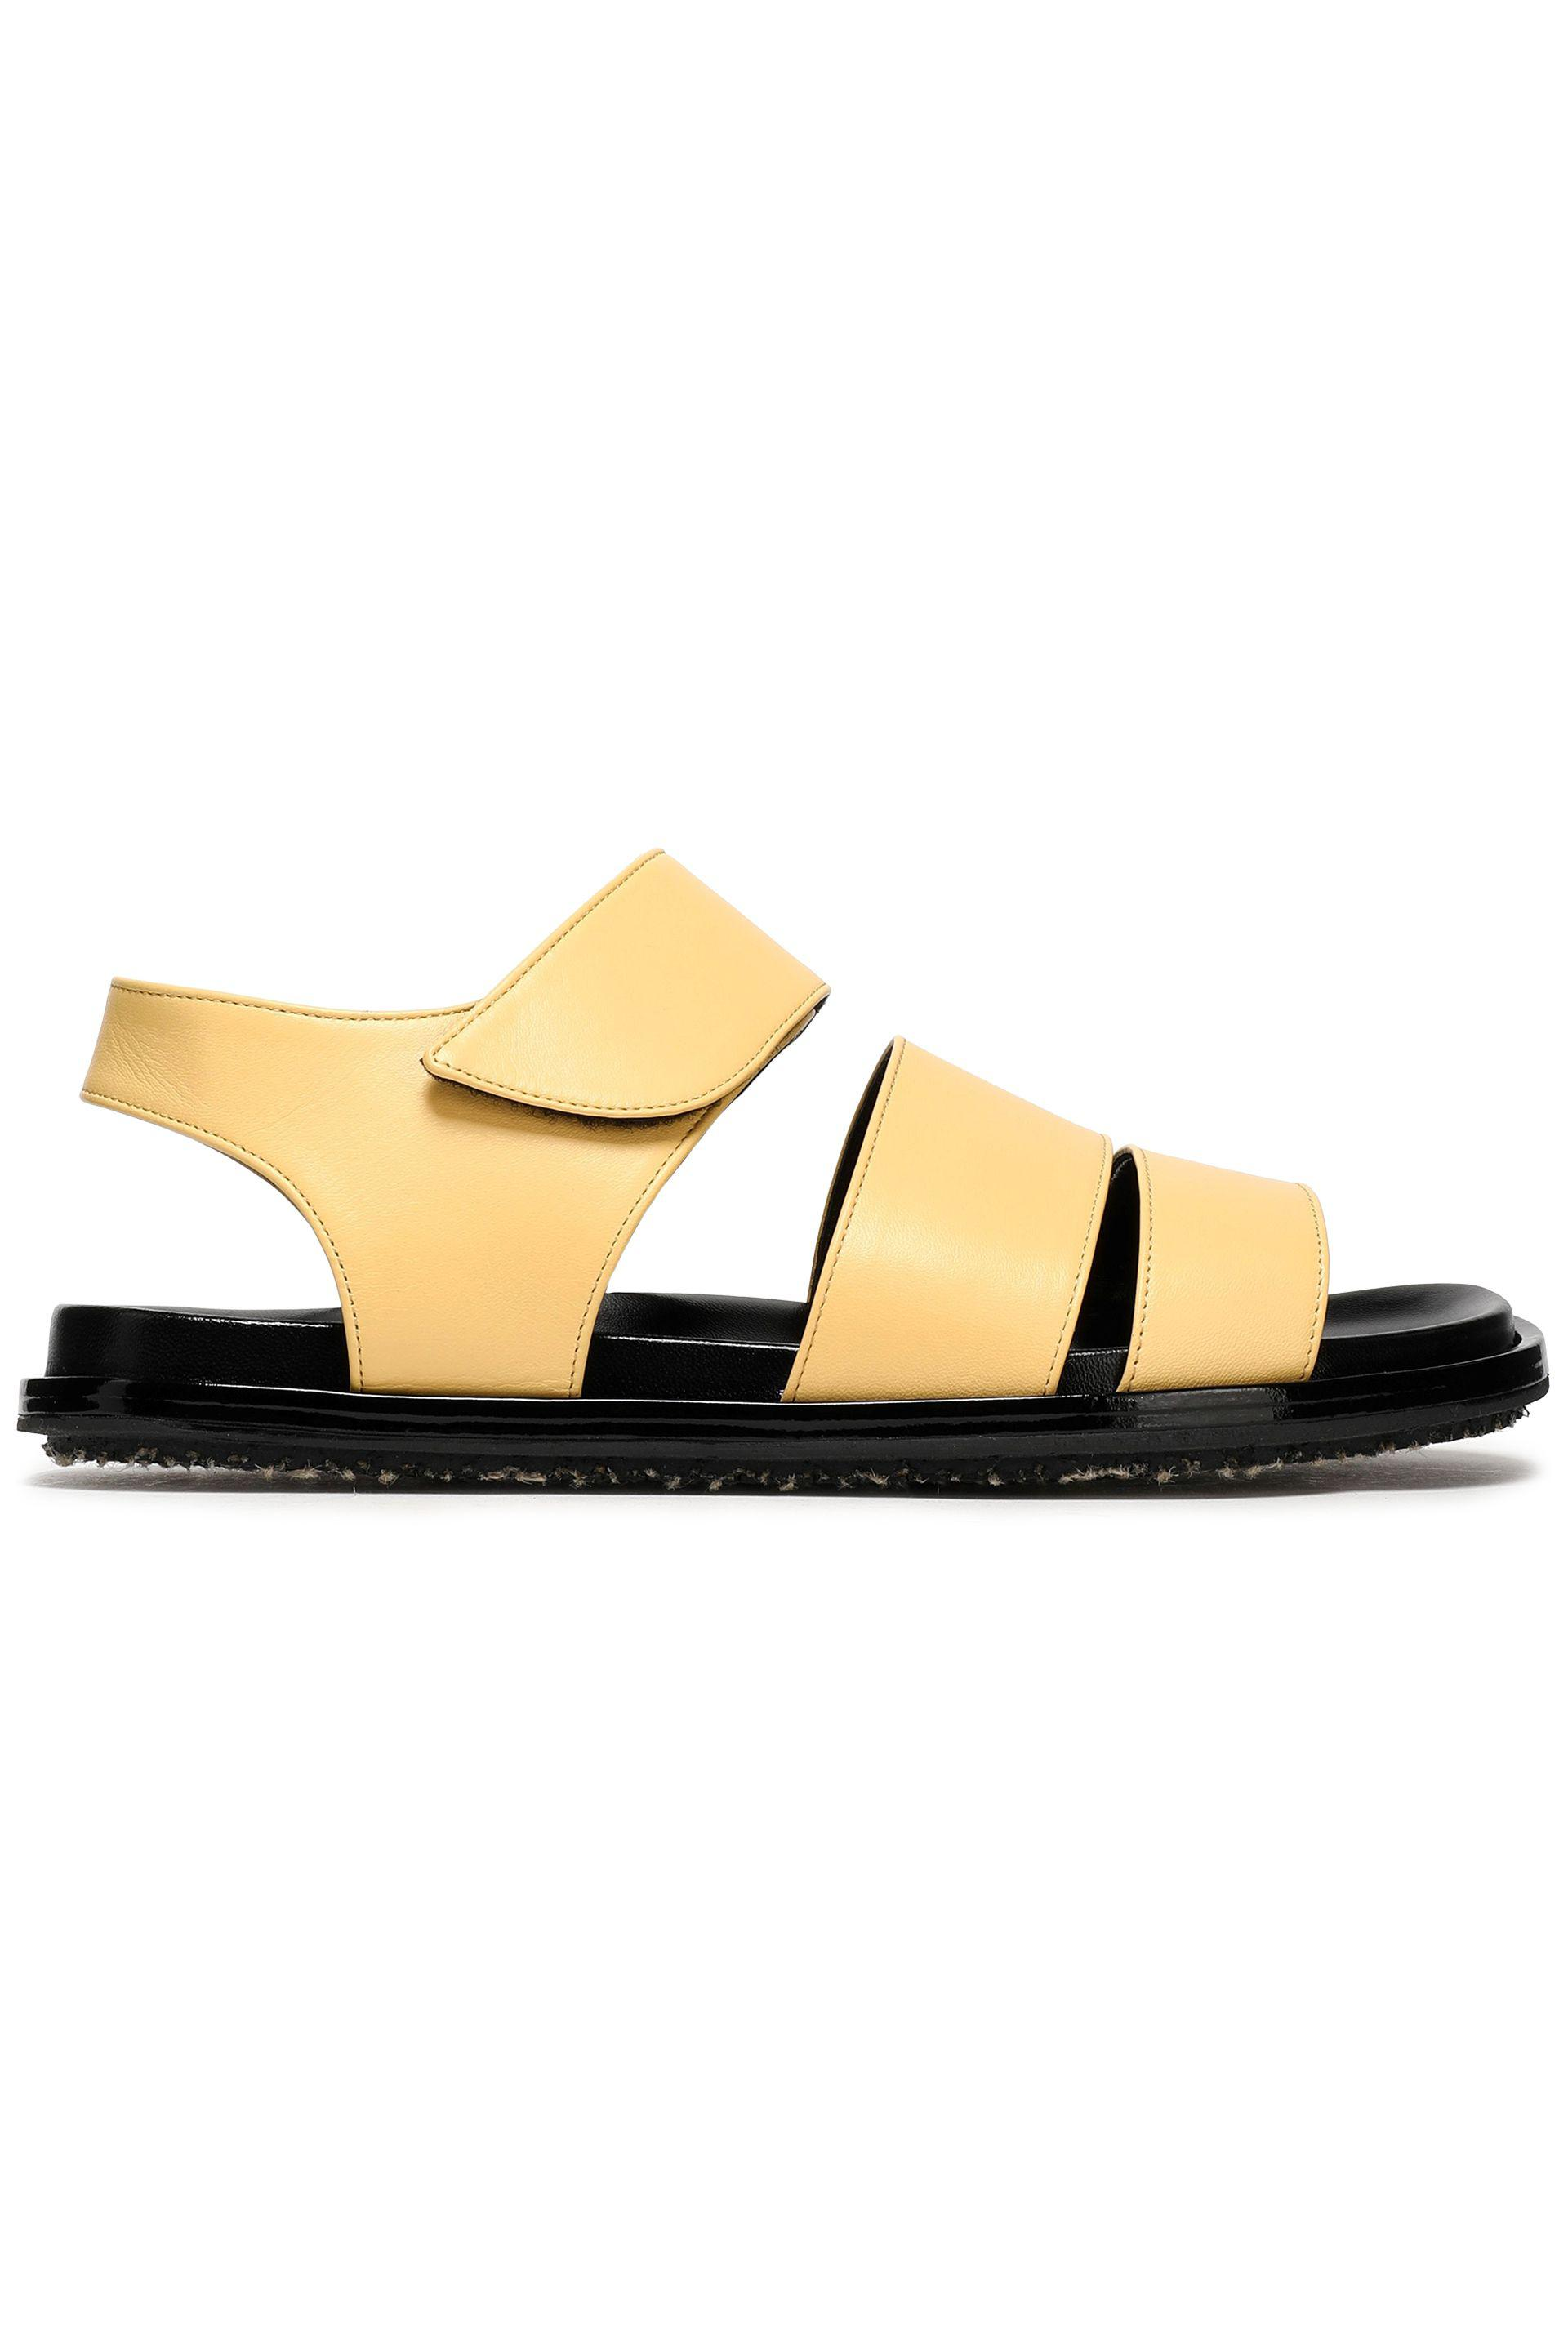 Marni Woman Leather Sandals Light Size 40 TuzQ9YgS